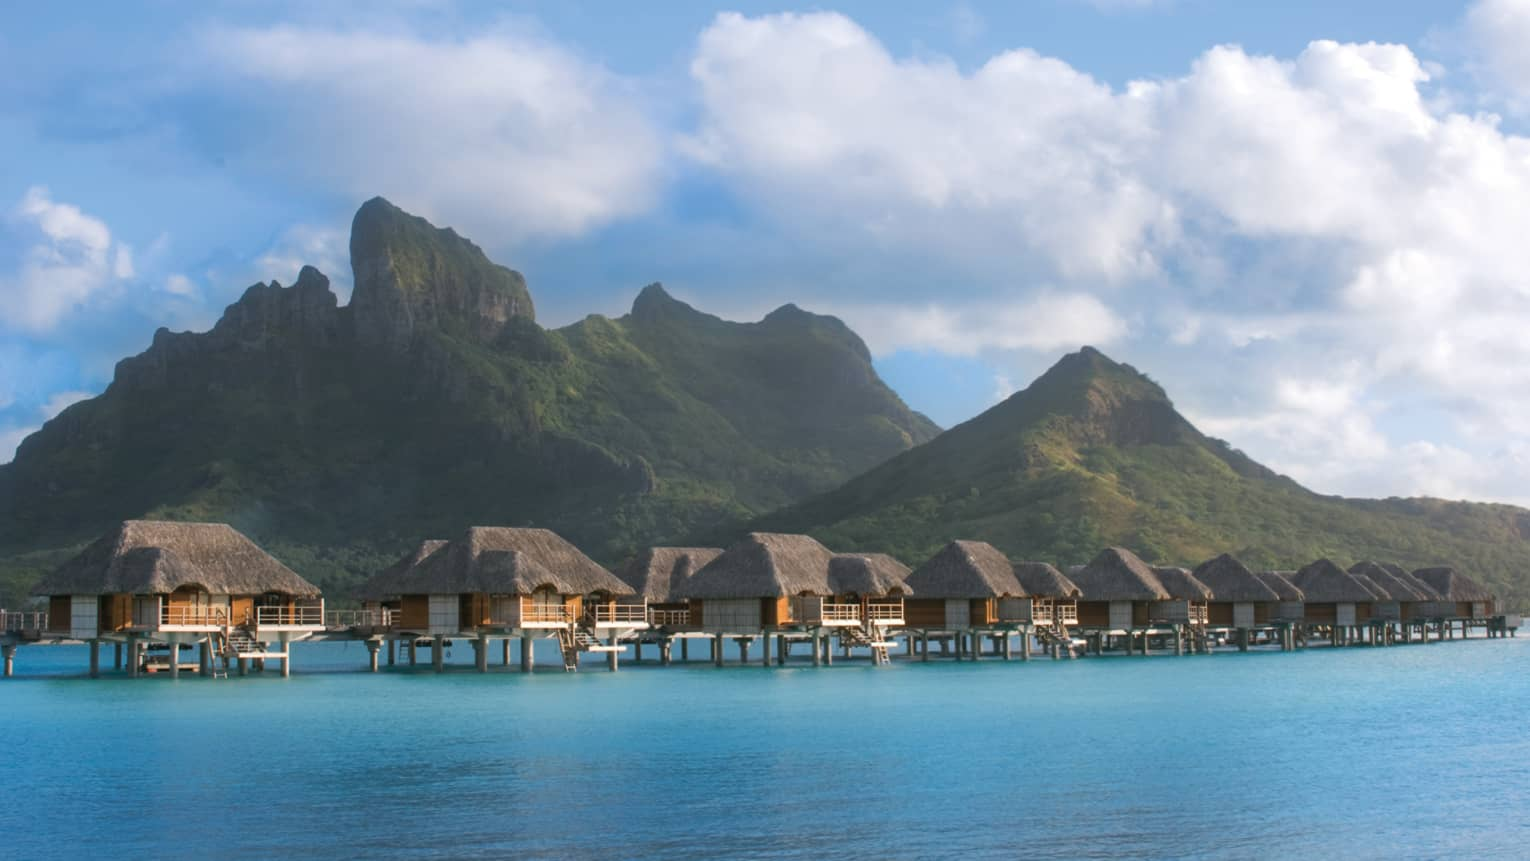 Two-bedroom overwater bungalows in a row over ocean with Bora Bora mountains in background